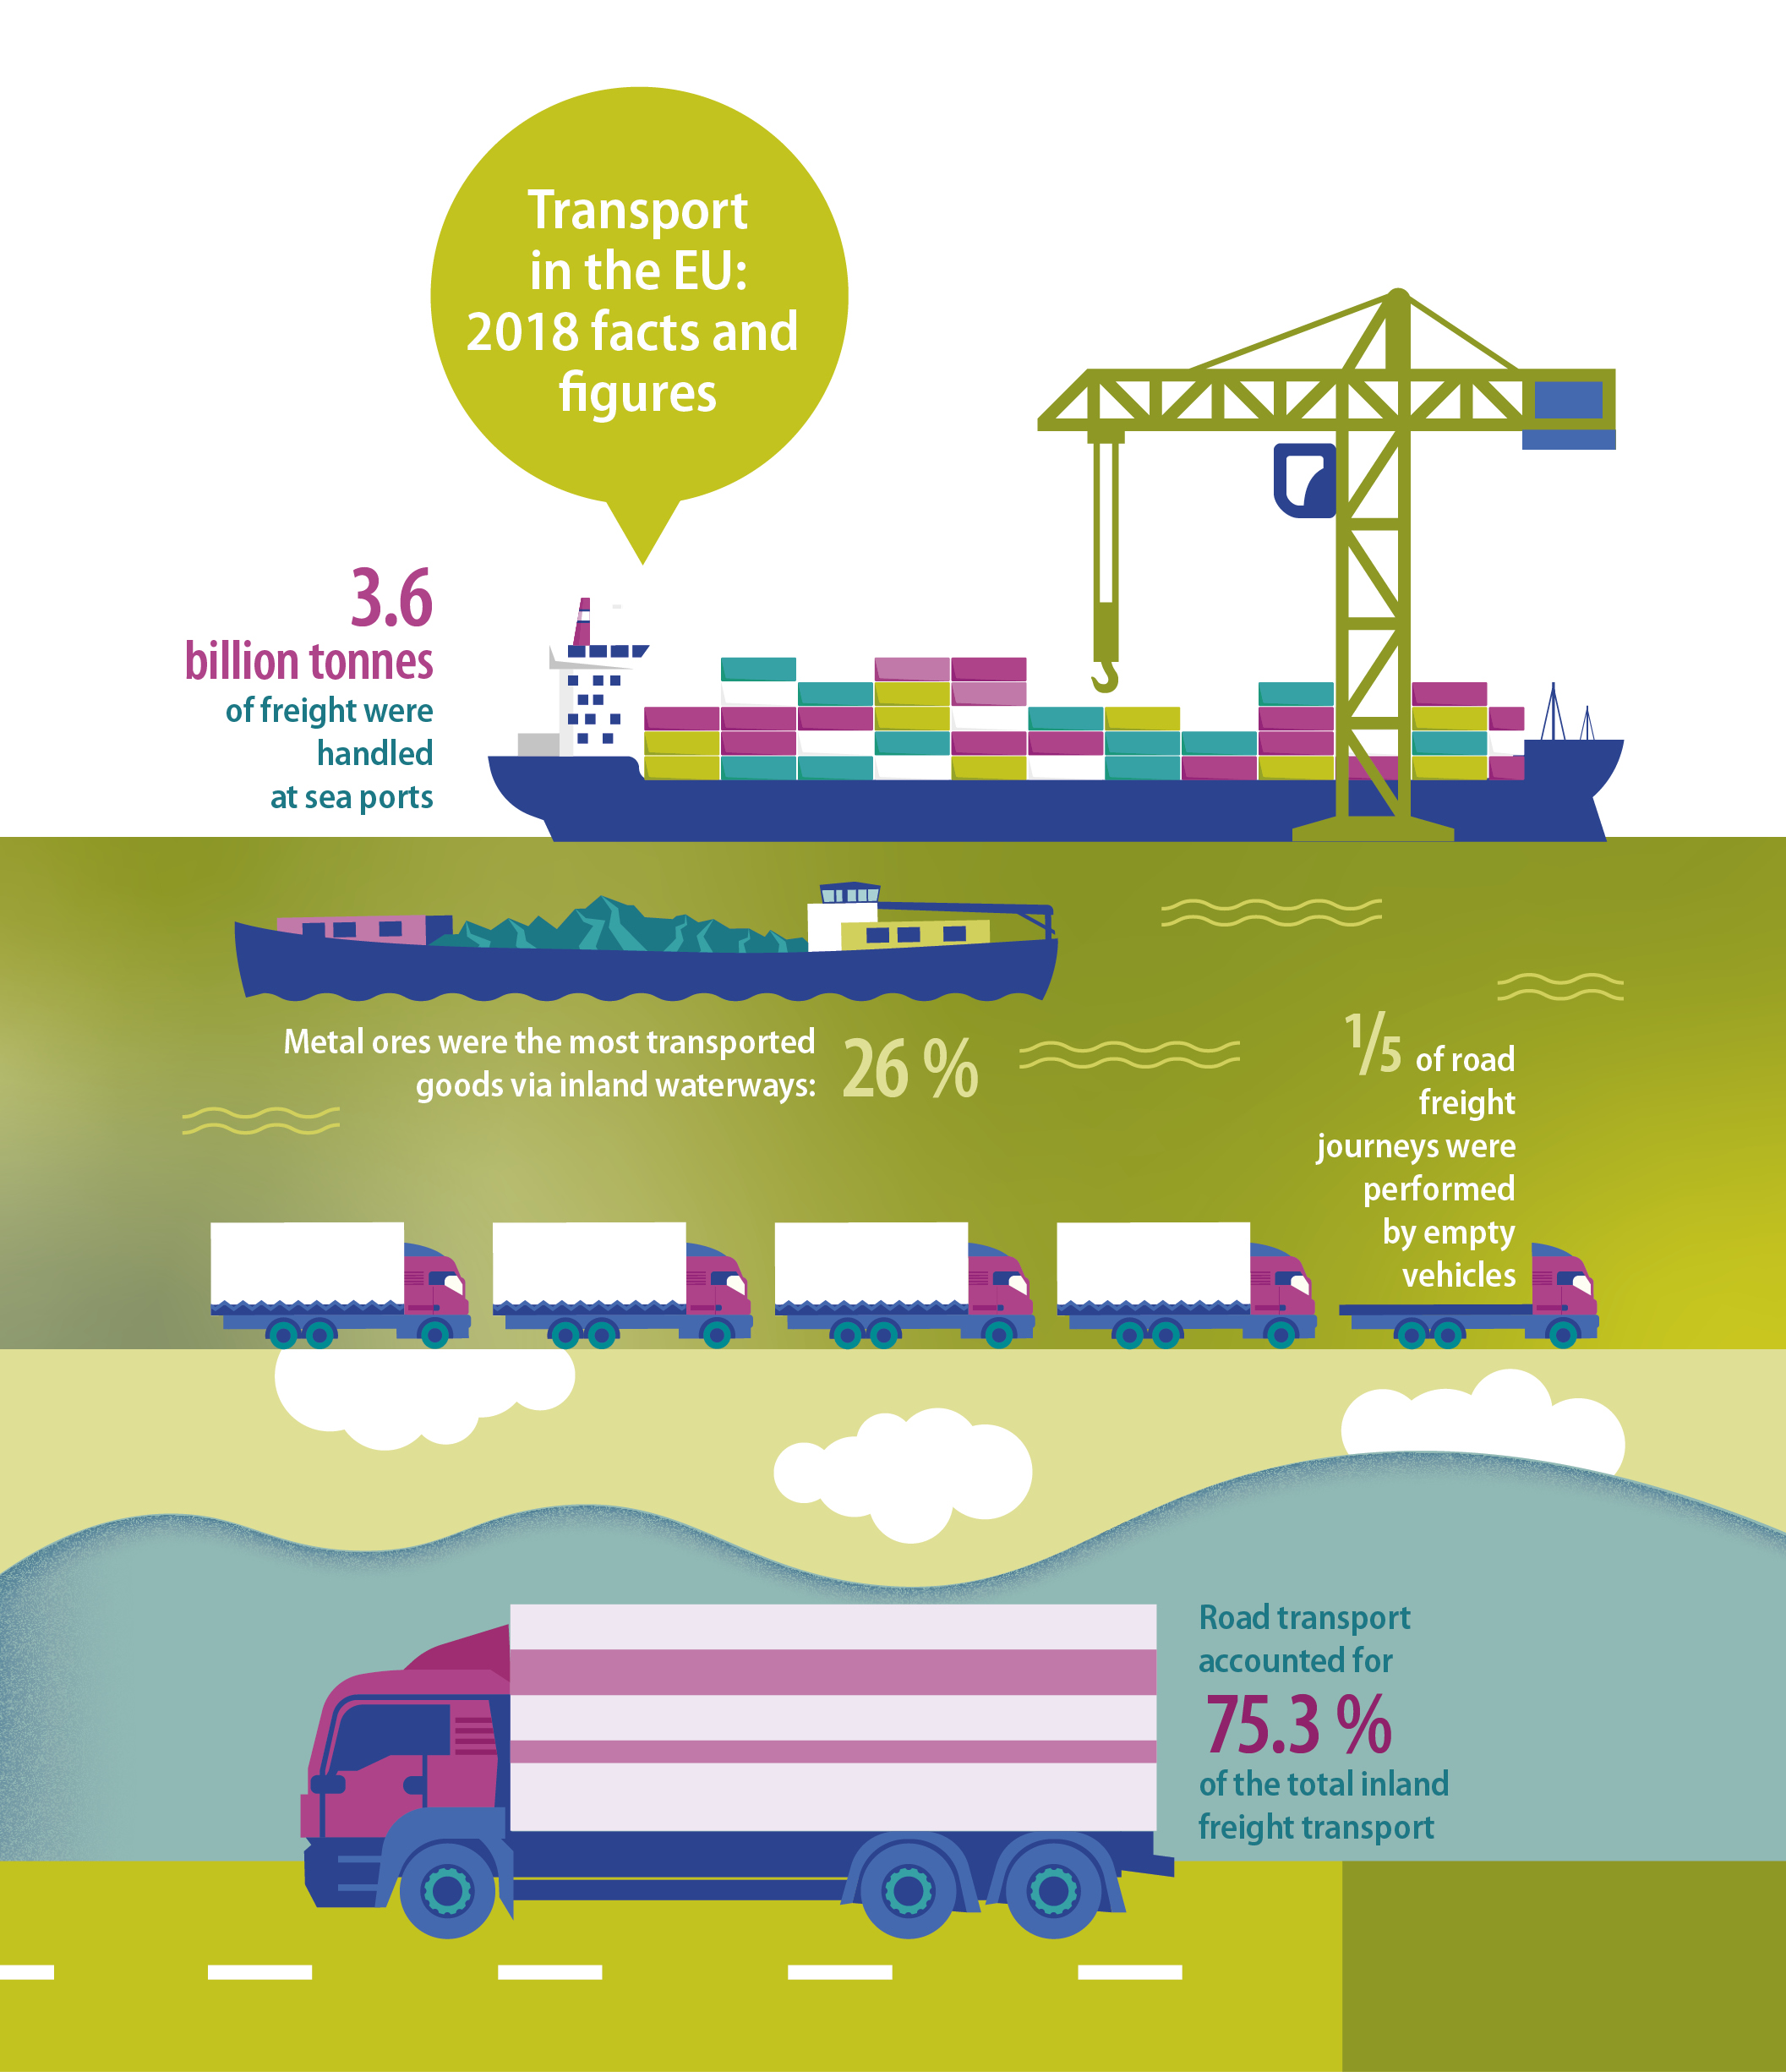 Transport in the EU: 2018 facts and figures